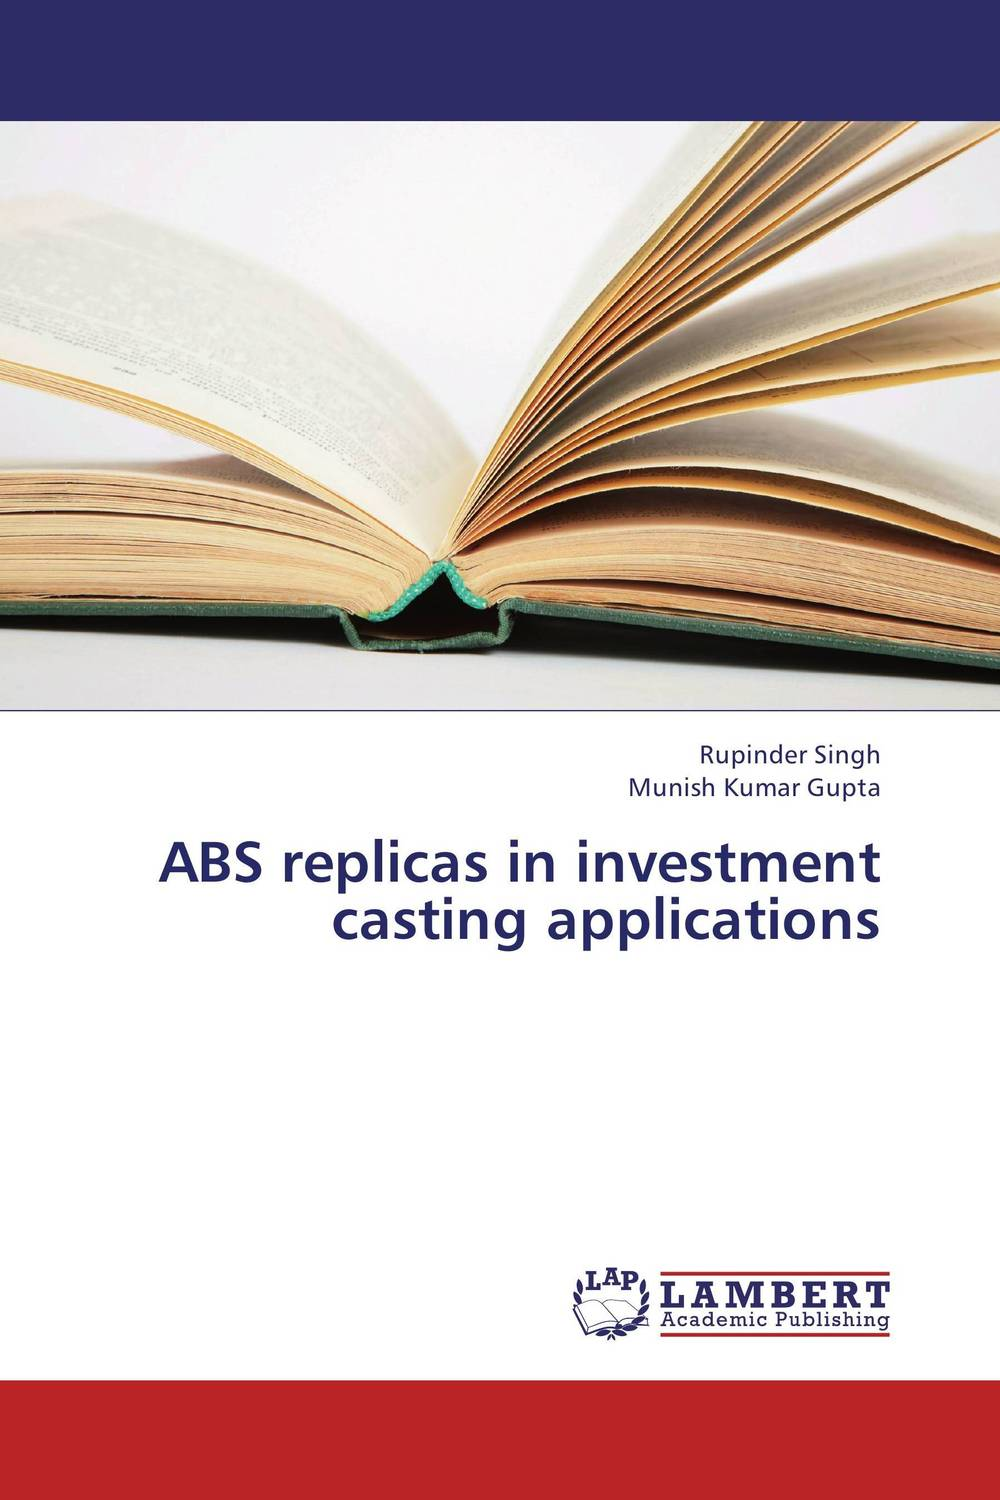 ABS replicas in investment casting applications surfactants effect on hardness of dental stone and investment material